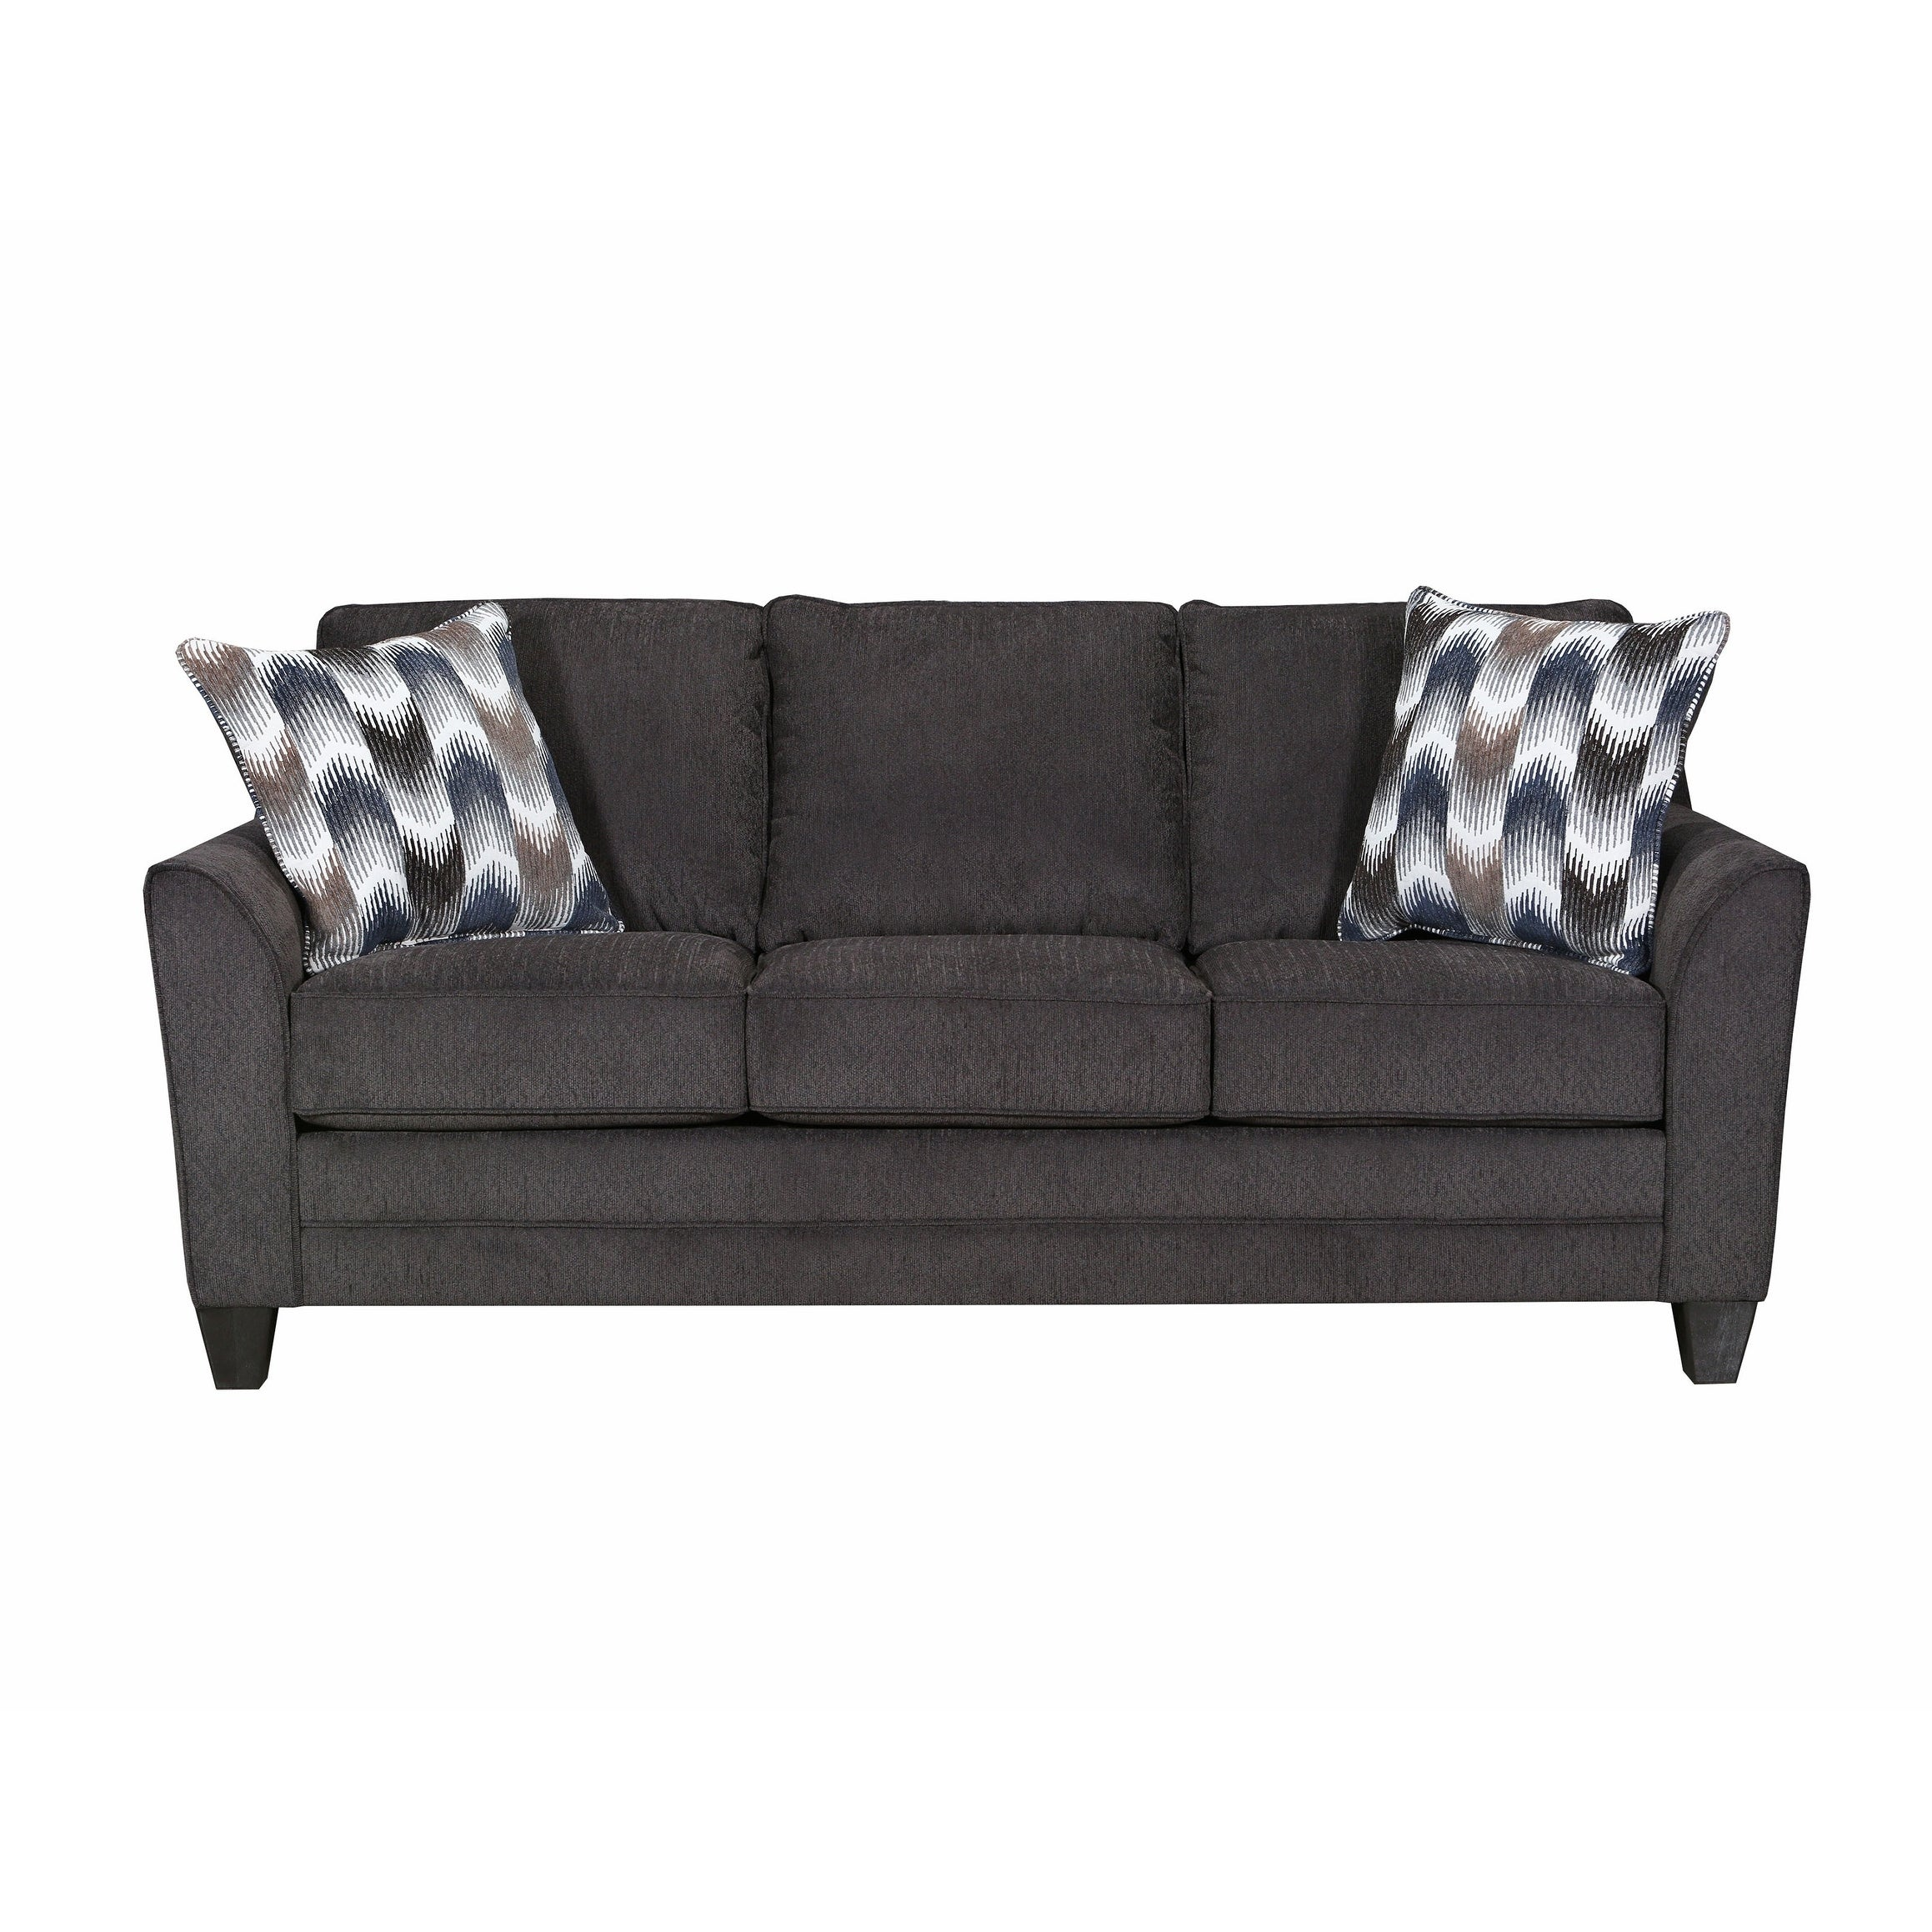 - Shop Mandy Charcoal Queen Sleeper Sofa - On Sale - Overstock - 25627699